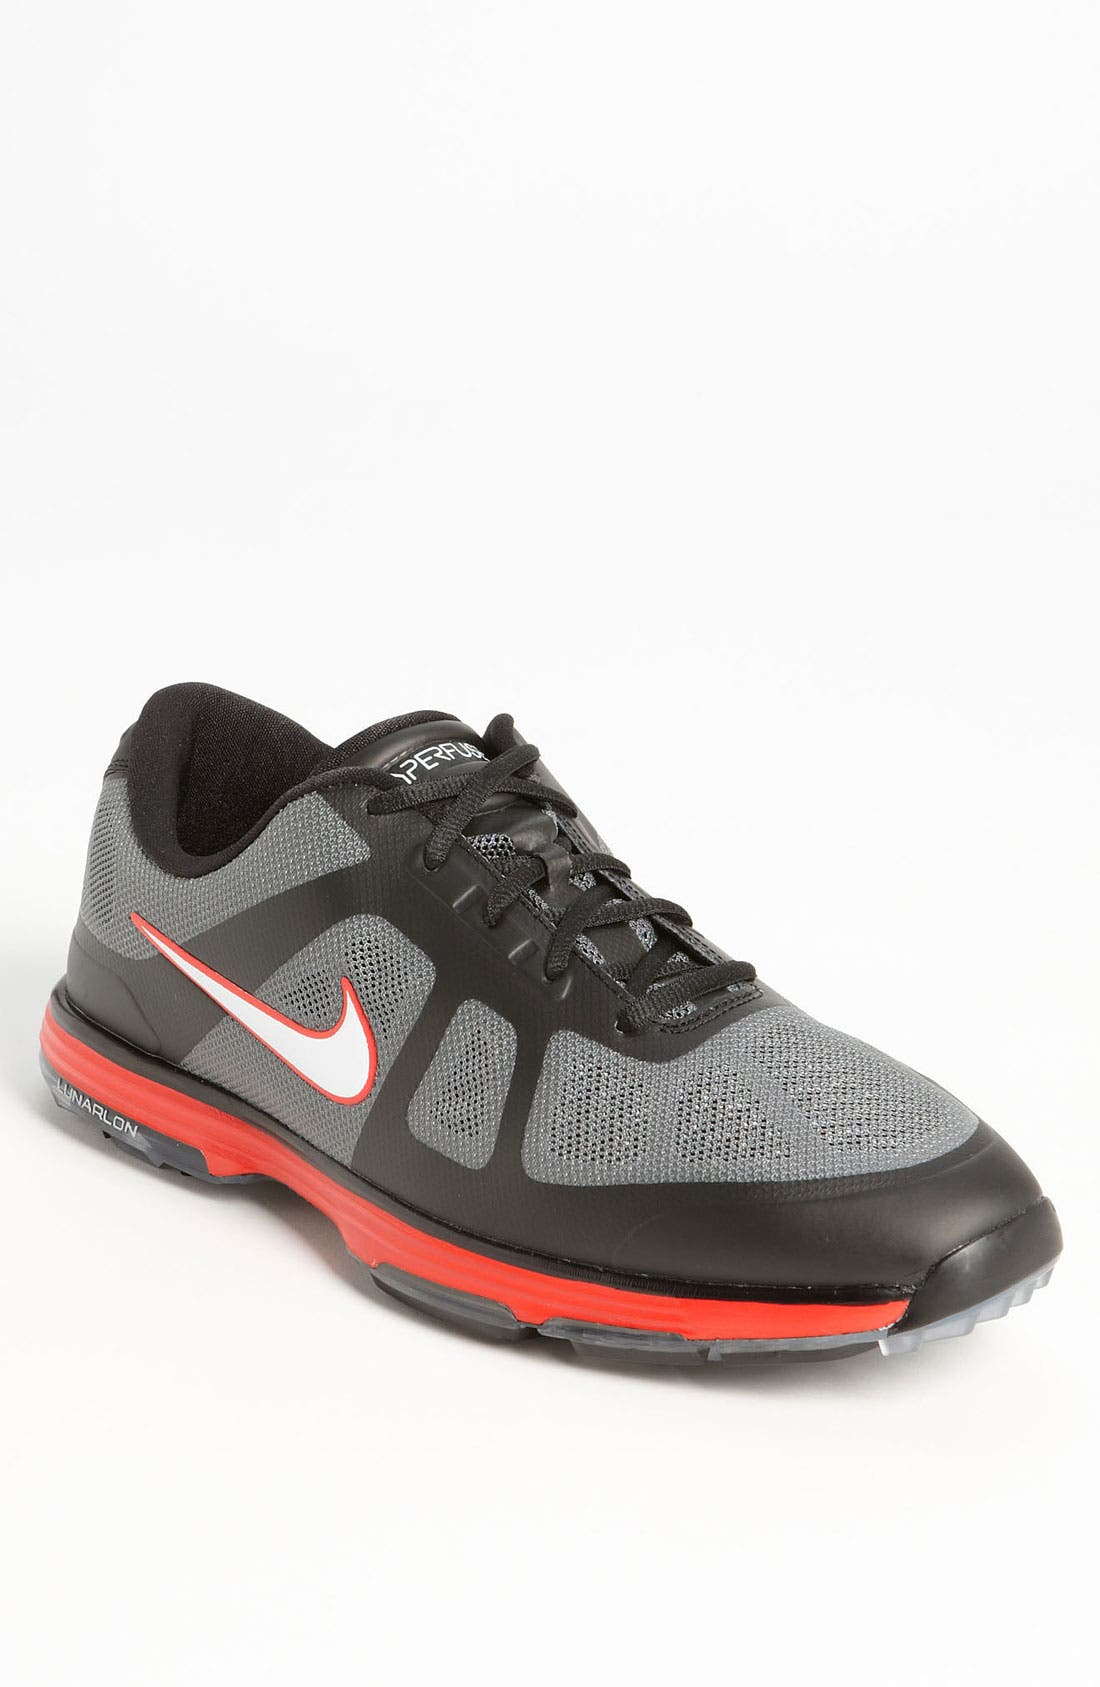 Main Image - Nike 'Lunar Ascend' Golf Shoe (Men)